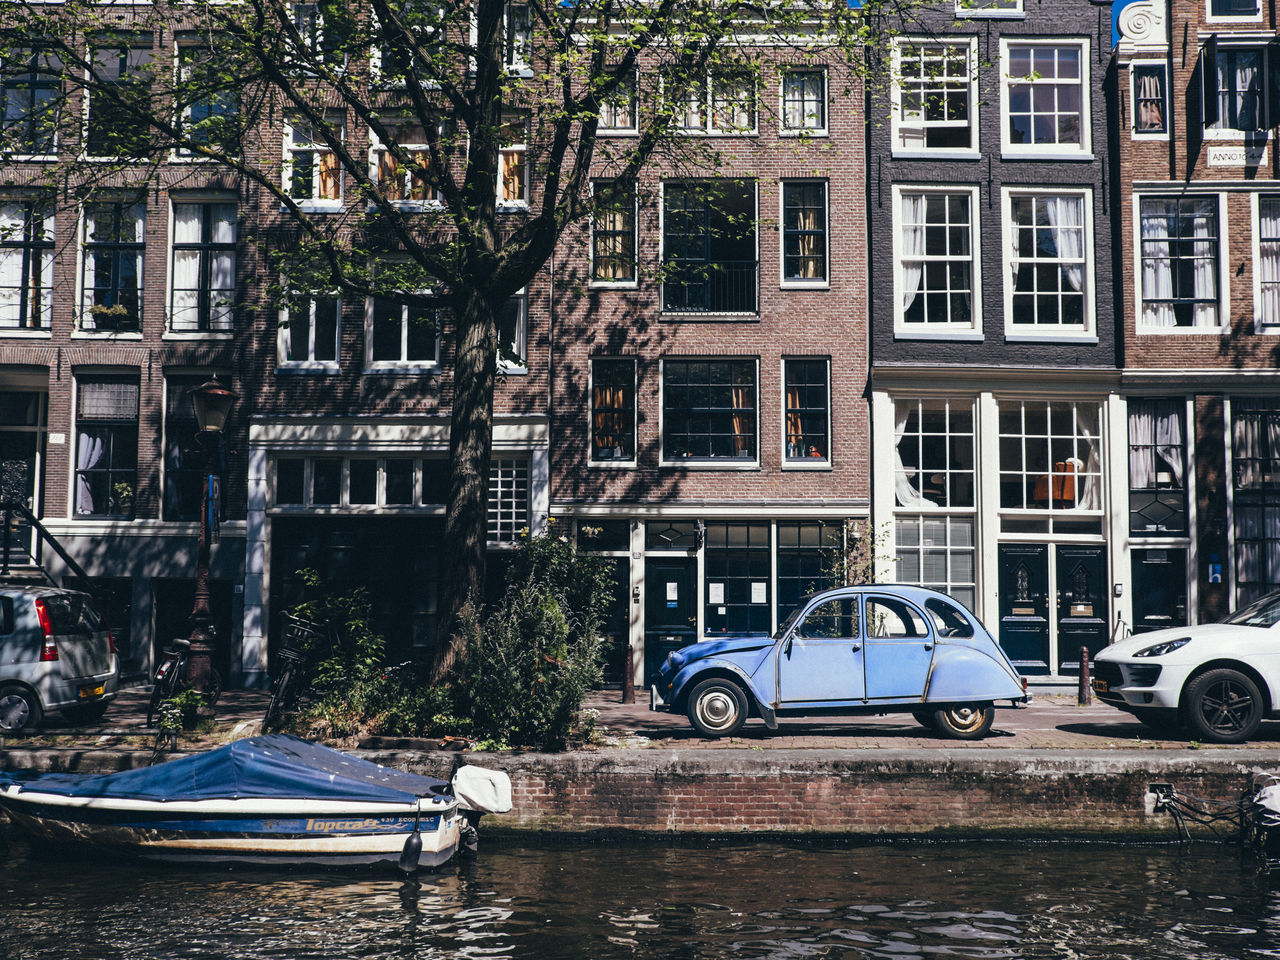 Amsterdam Architecture Building Exterior Built Structure Canal Car City Land Vehicle Mode Of Transport Nautical Vessel Netherlands No People Outdoors Stationary The Architect - 2017 EyeEm Awards Transportation Water